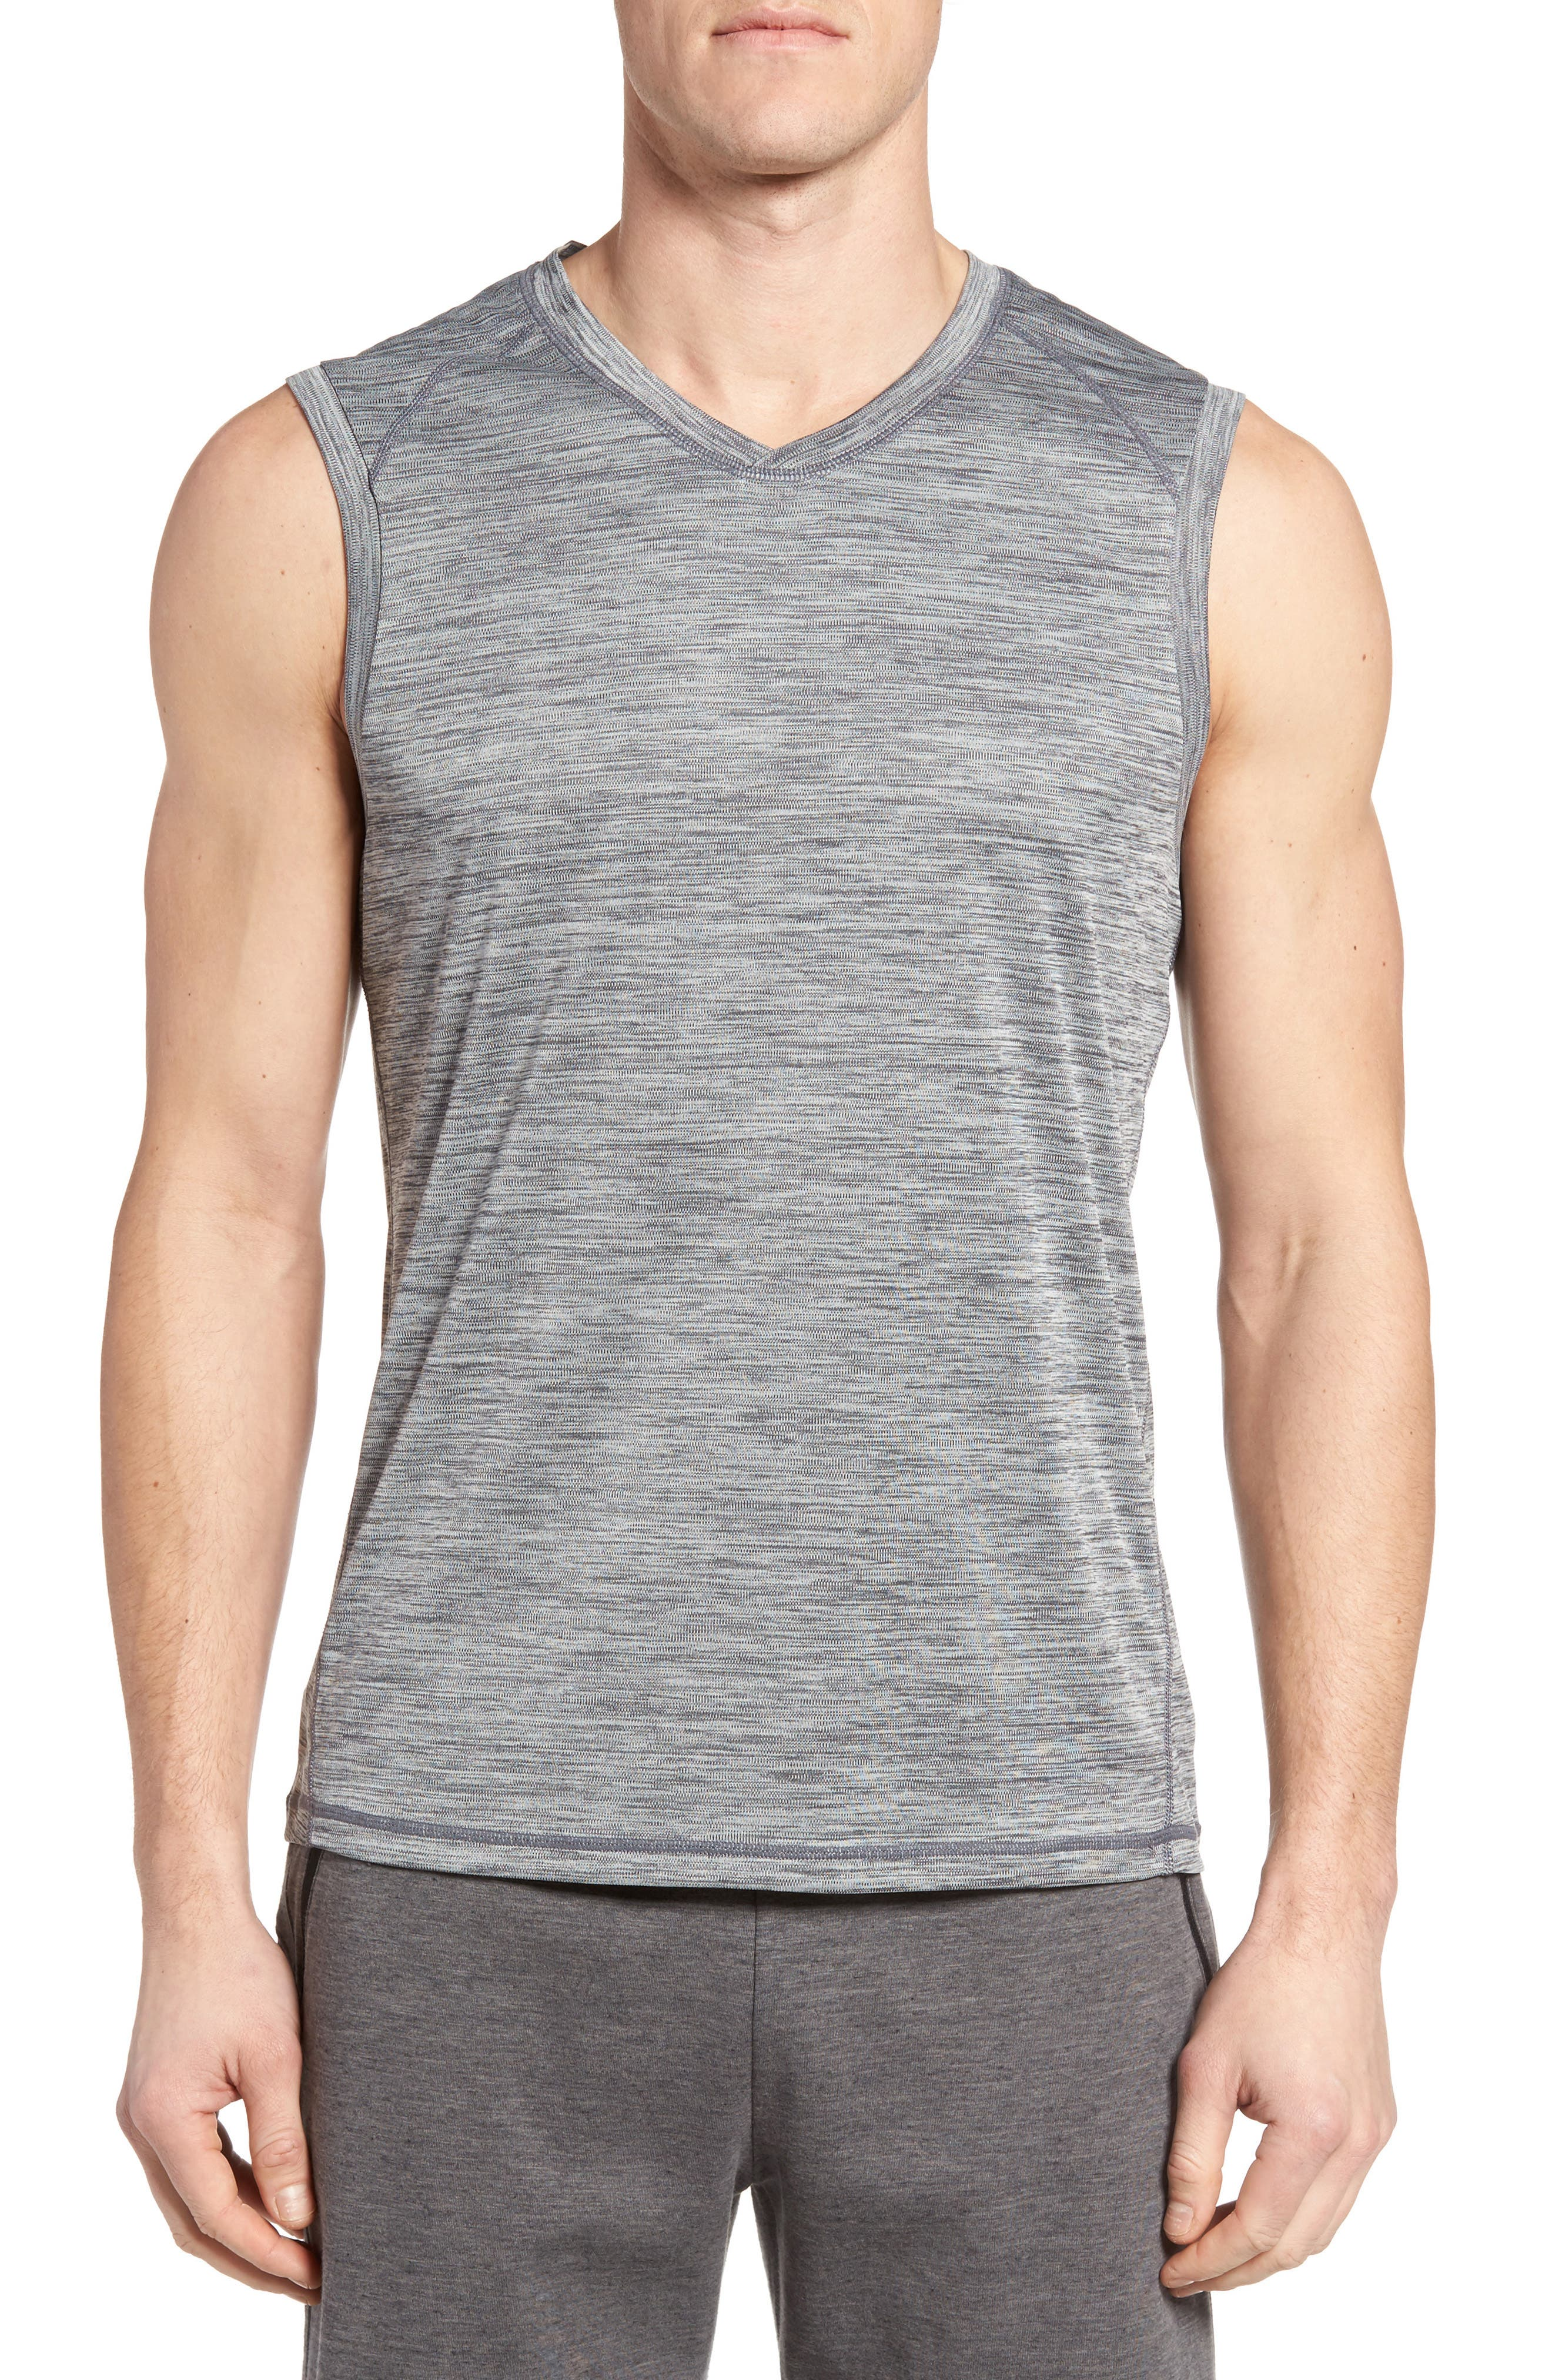 Triplite Muscle T-Shirt,                         Main,                         color, 021